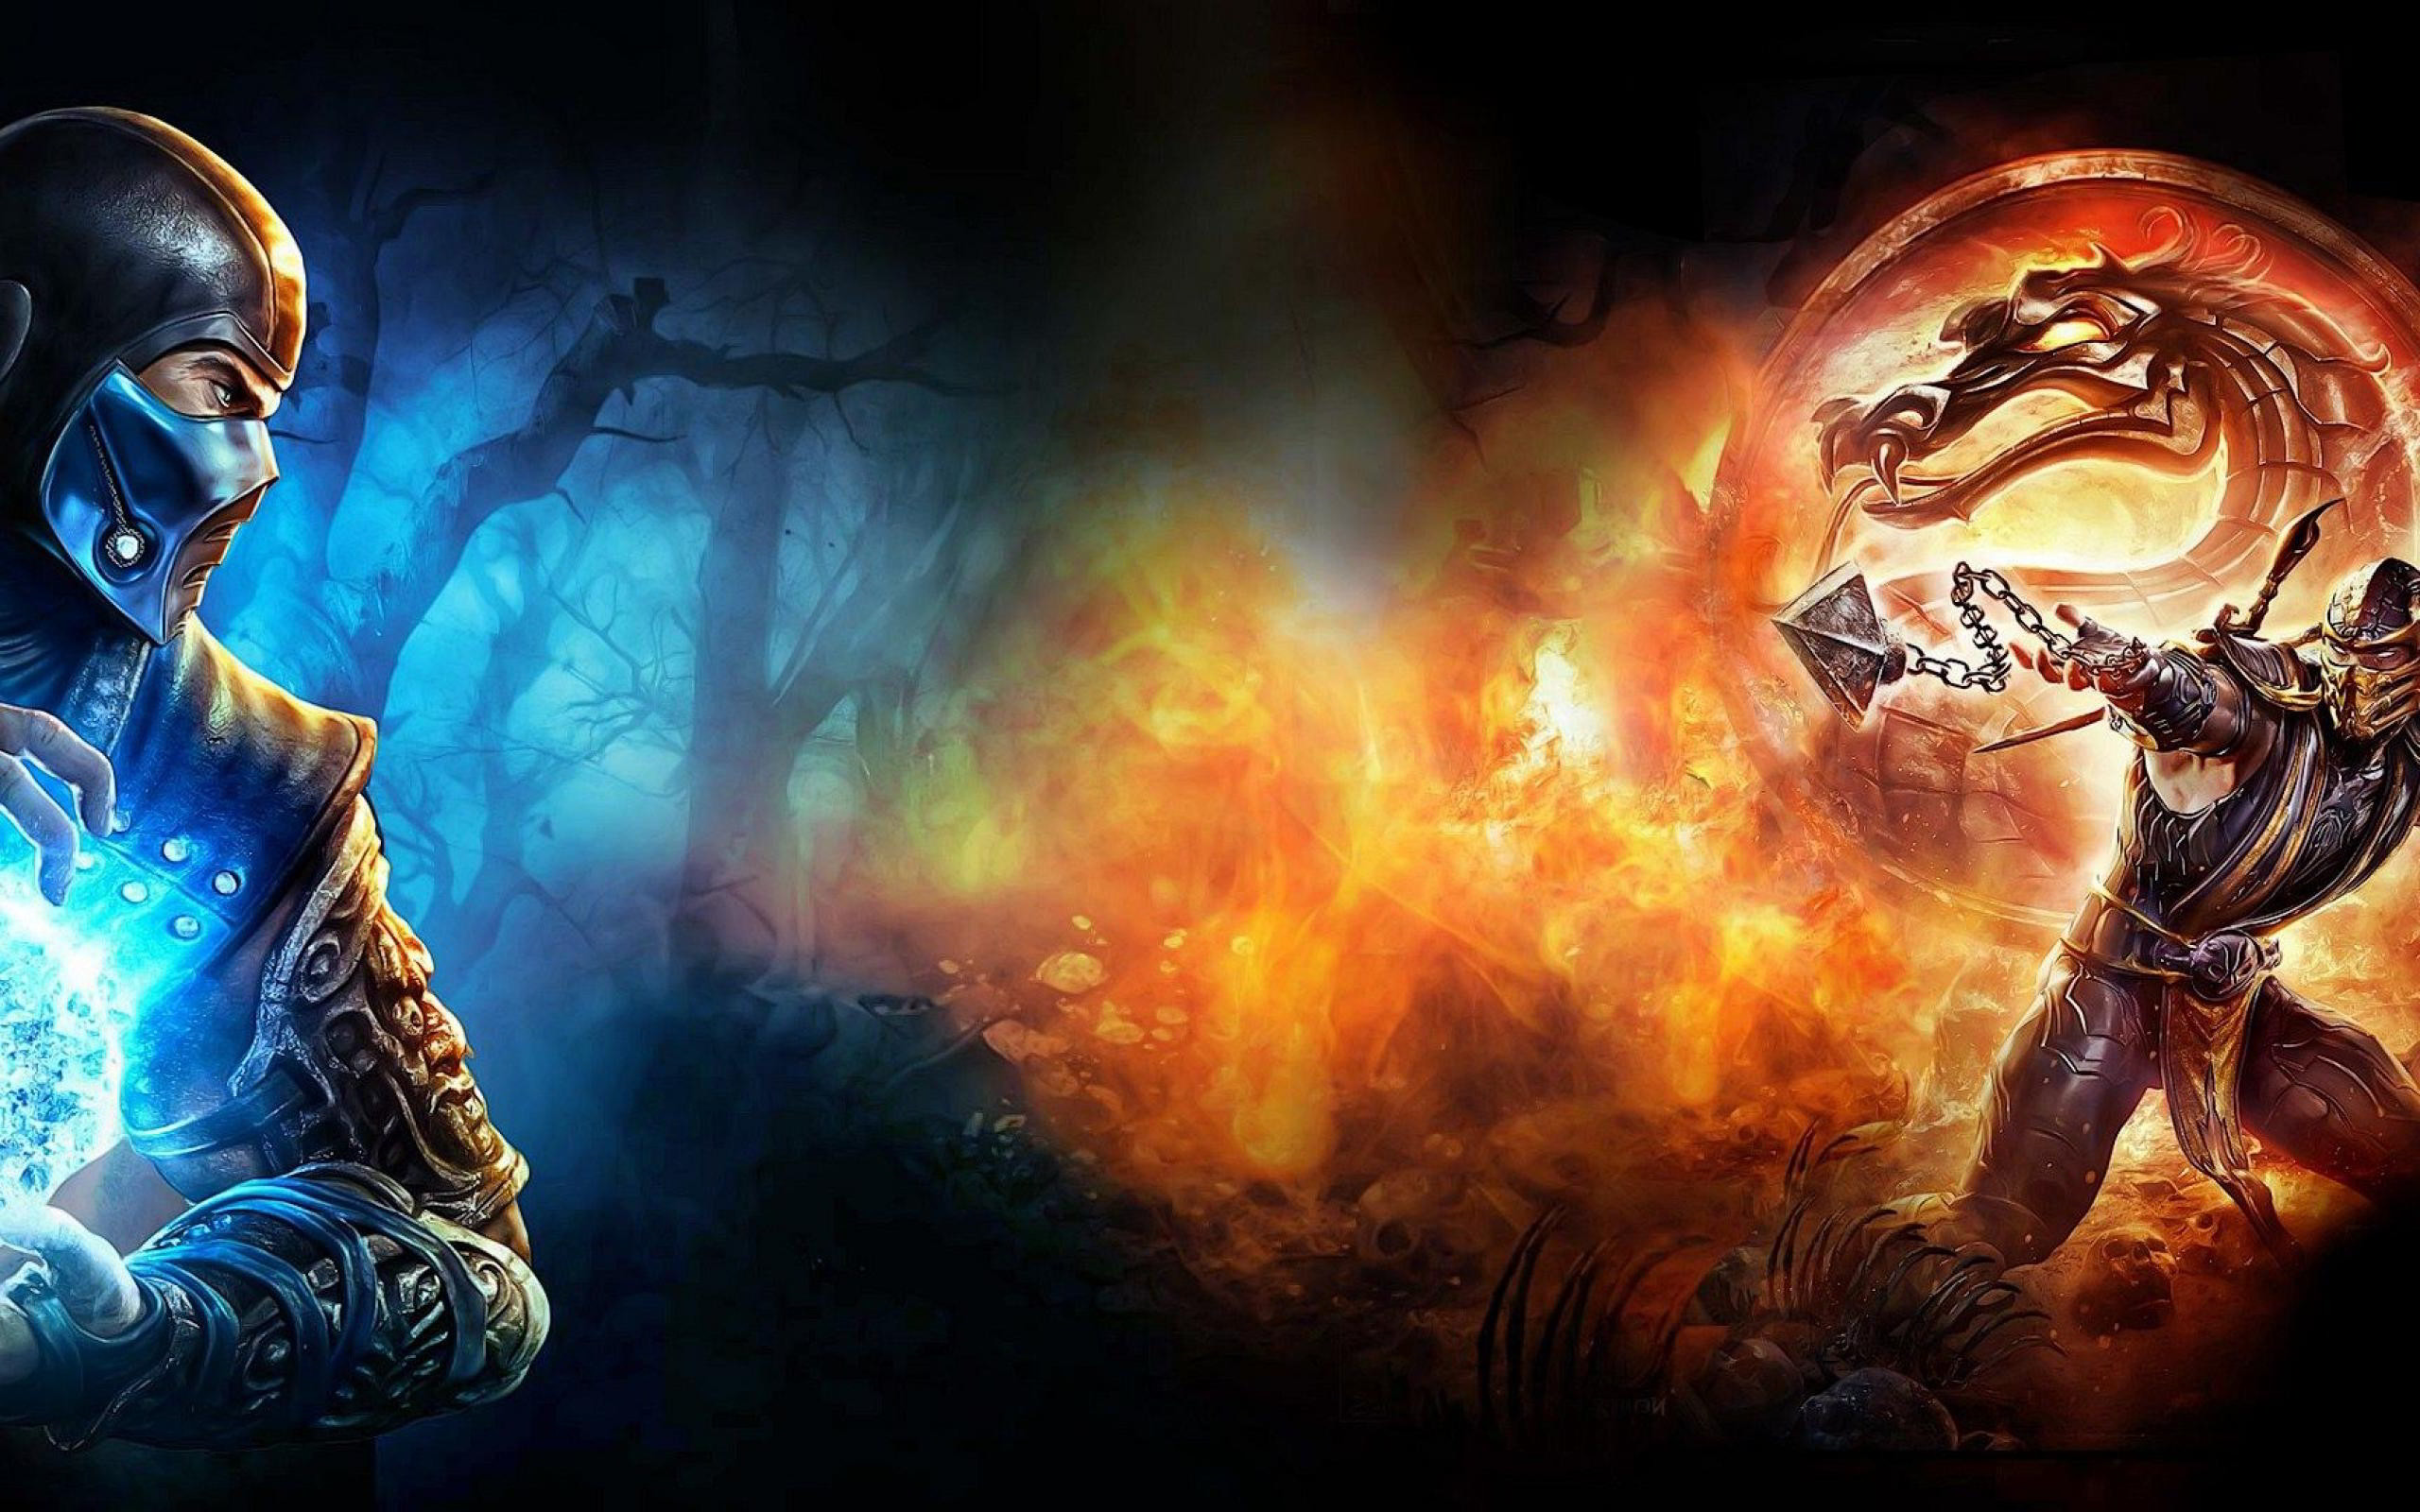 2560x1600 Mortal Kombat HD Wallpapers - Wallpaper Cave